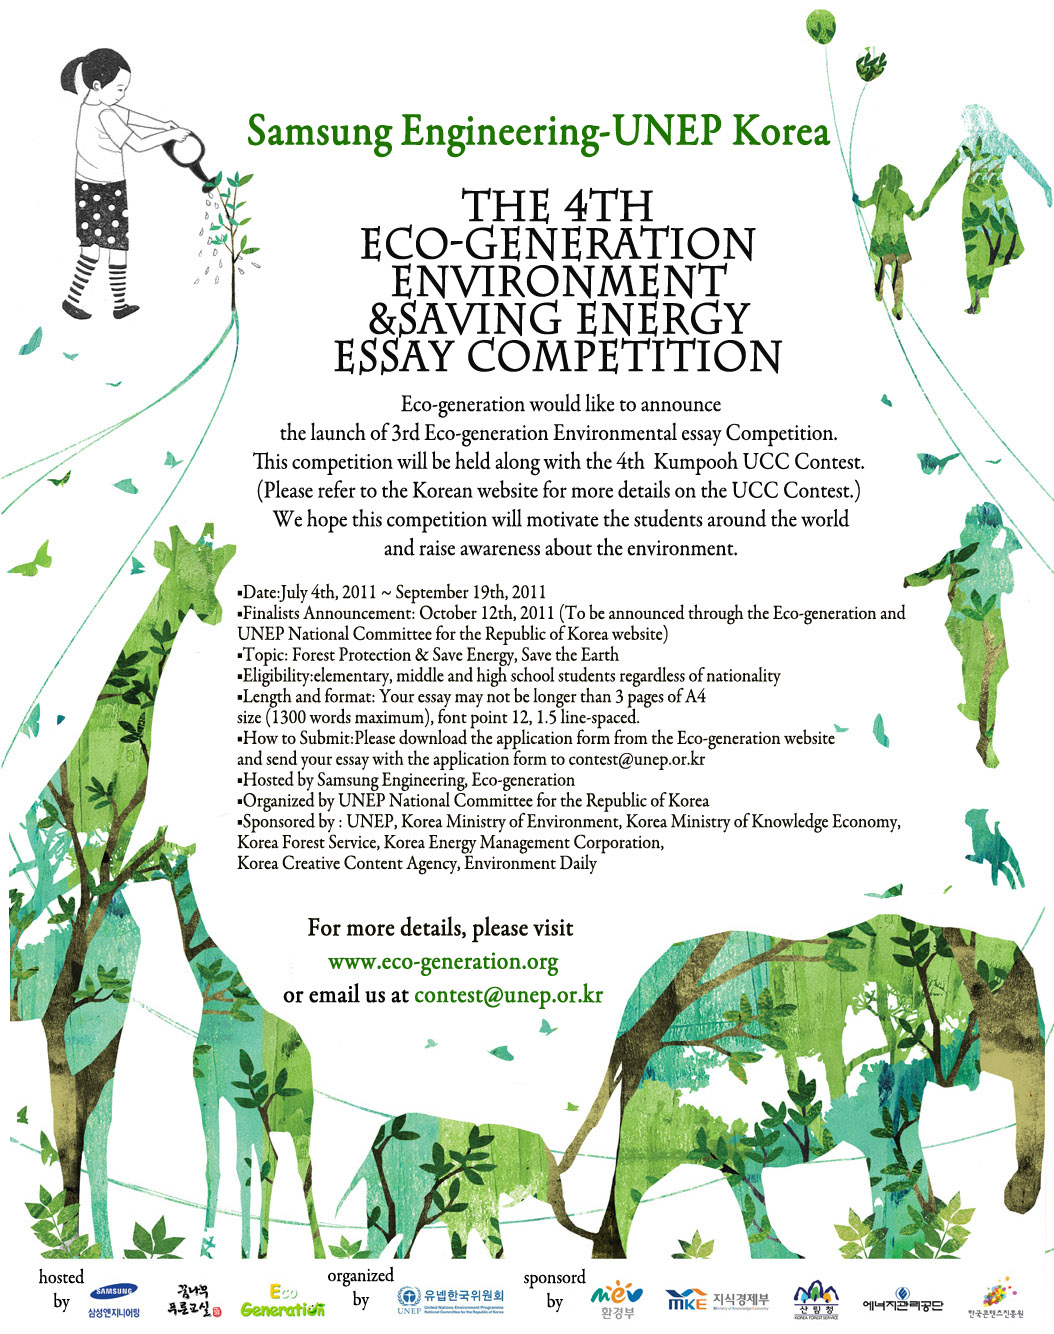 an essay on environmental issues Free essays on environmental issues get help with your writing 1 through 30.